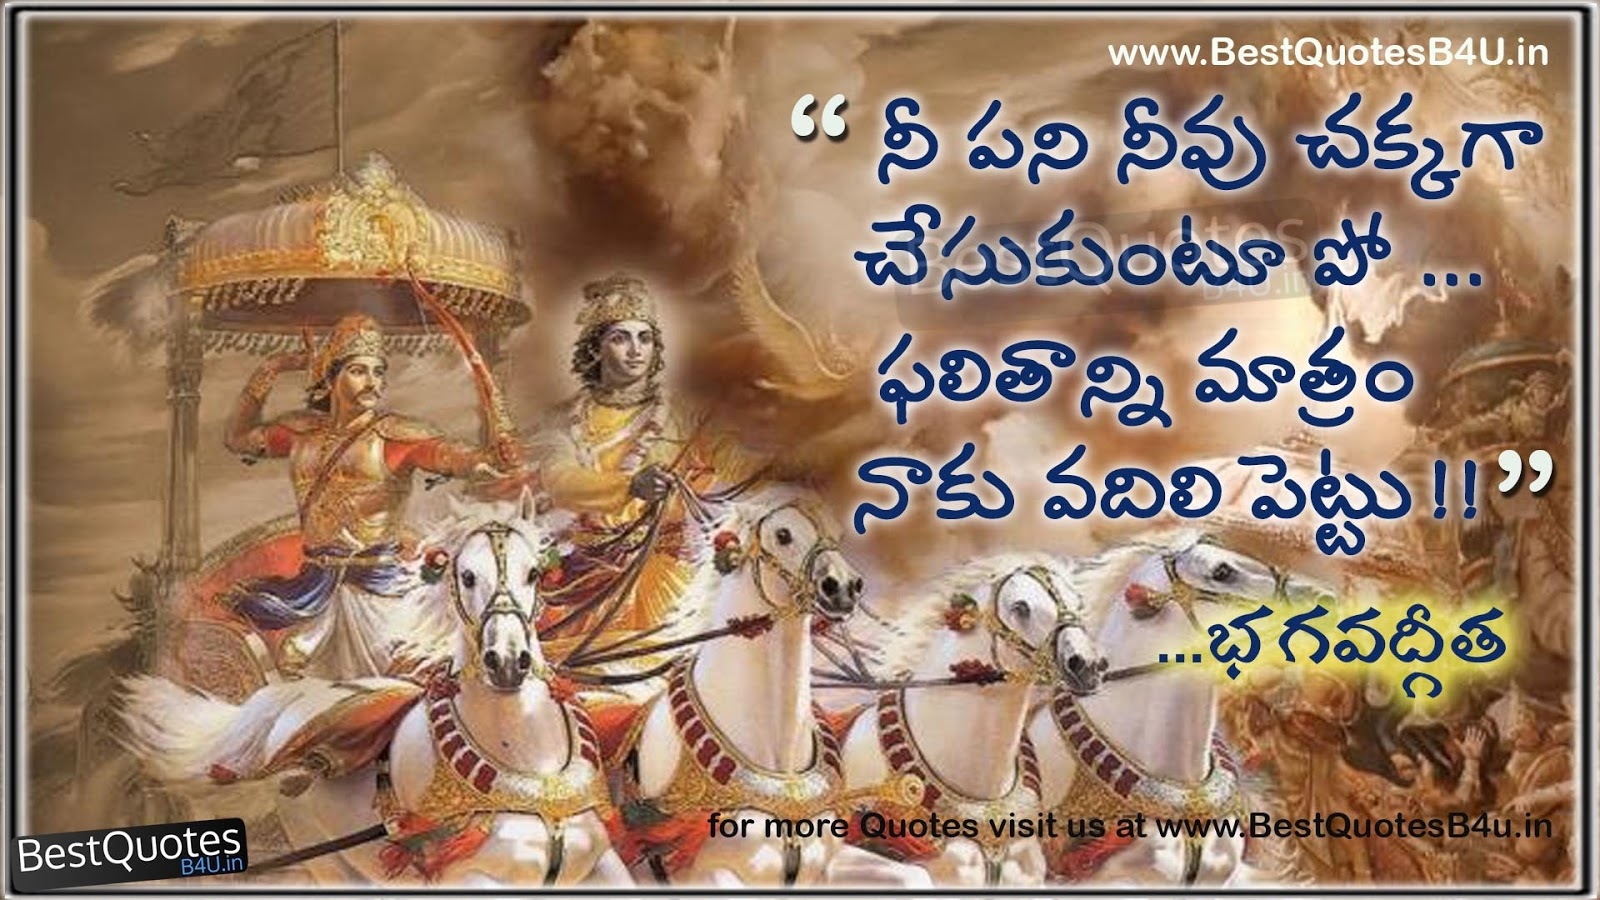 Bhagavadgita Quotes In Telugu Bestquotesb4u English Telugu